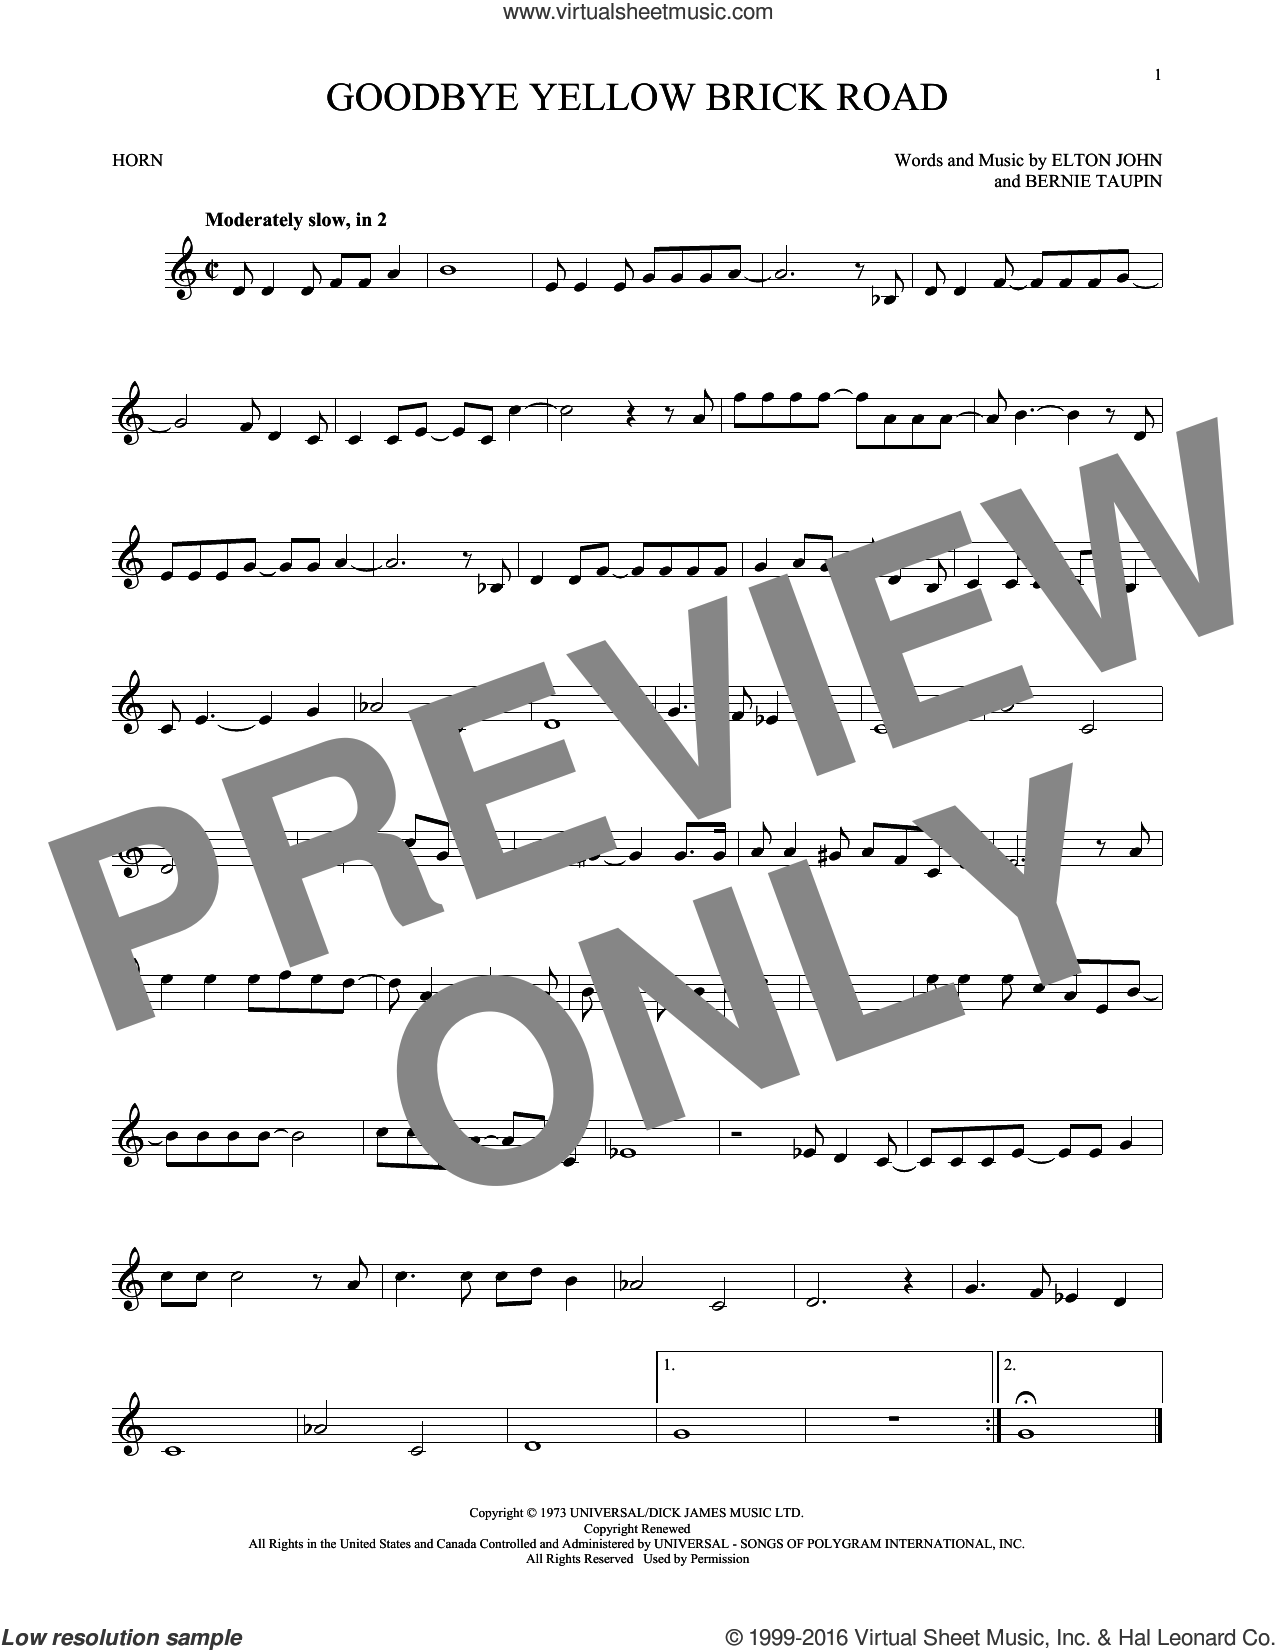 Goodbye Yellow Brick Road sheet music for horn solo by Elton John and Bernie Taupin, intermediate skill level